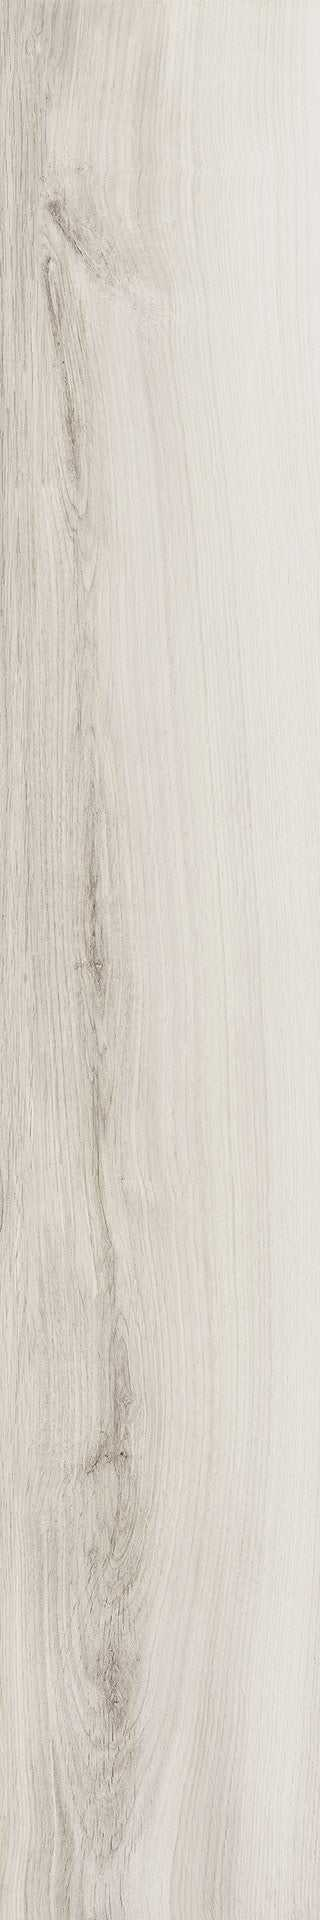 200x1200mm Just Color White Italian Porcelain Tiles (IT0099)